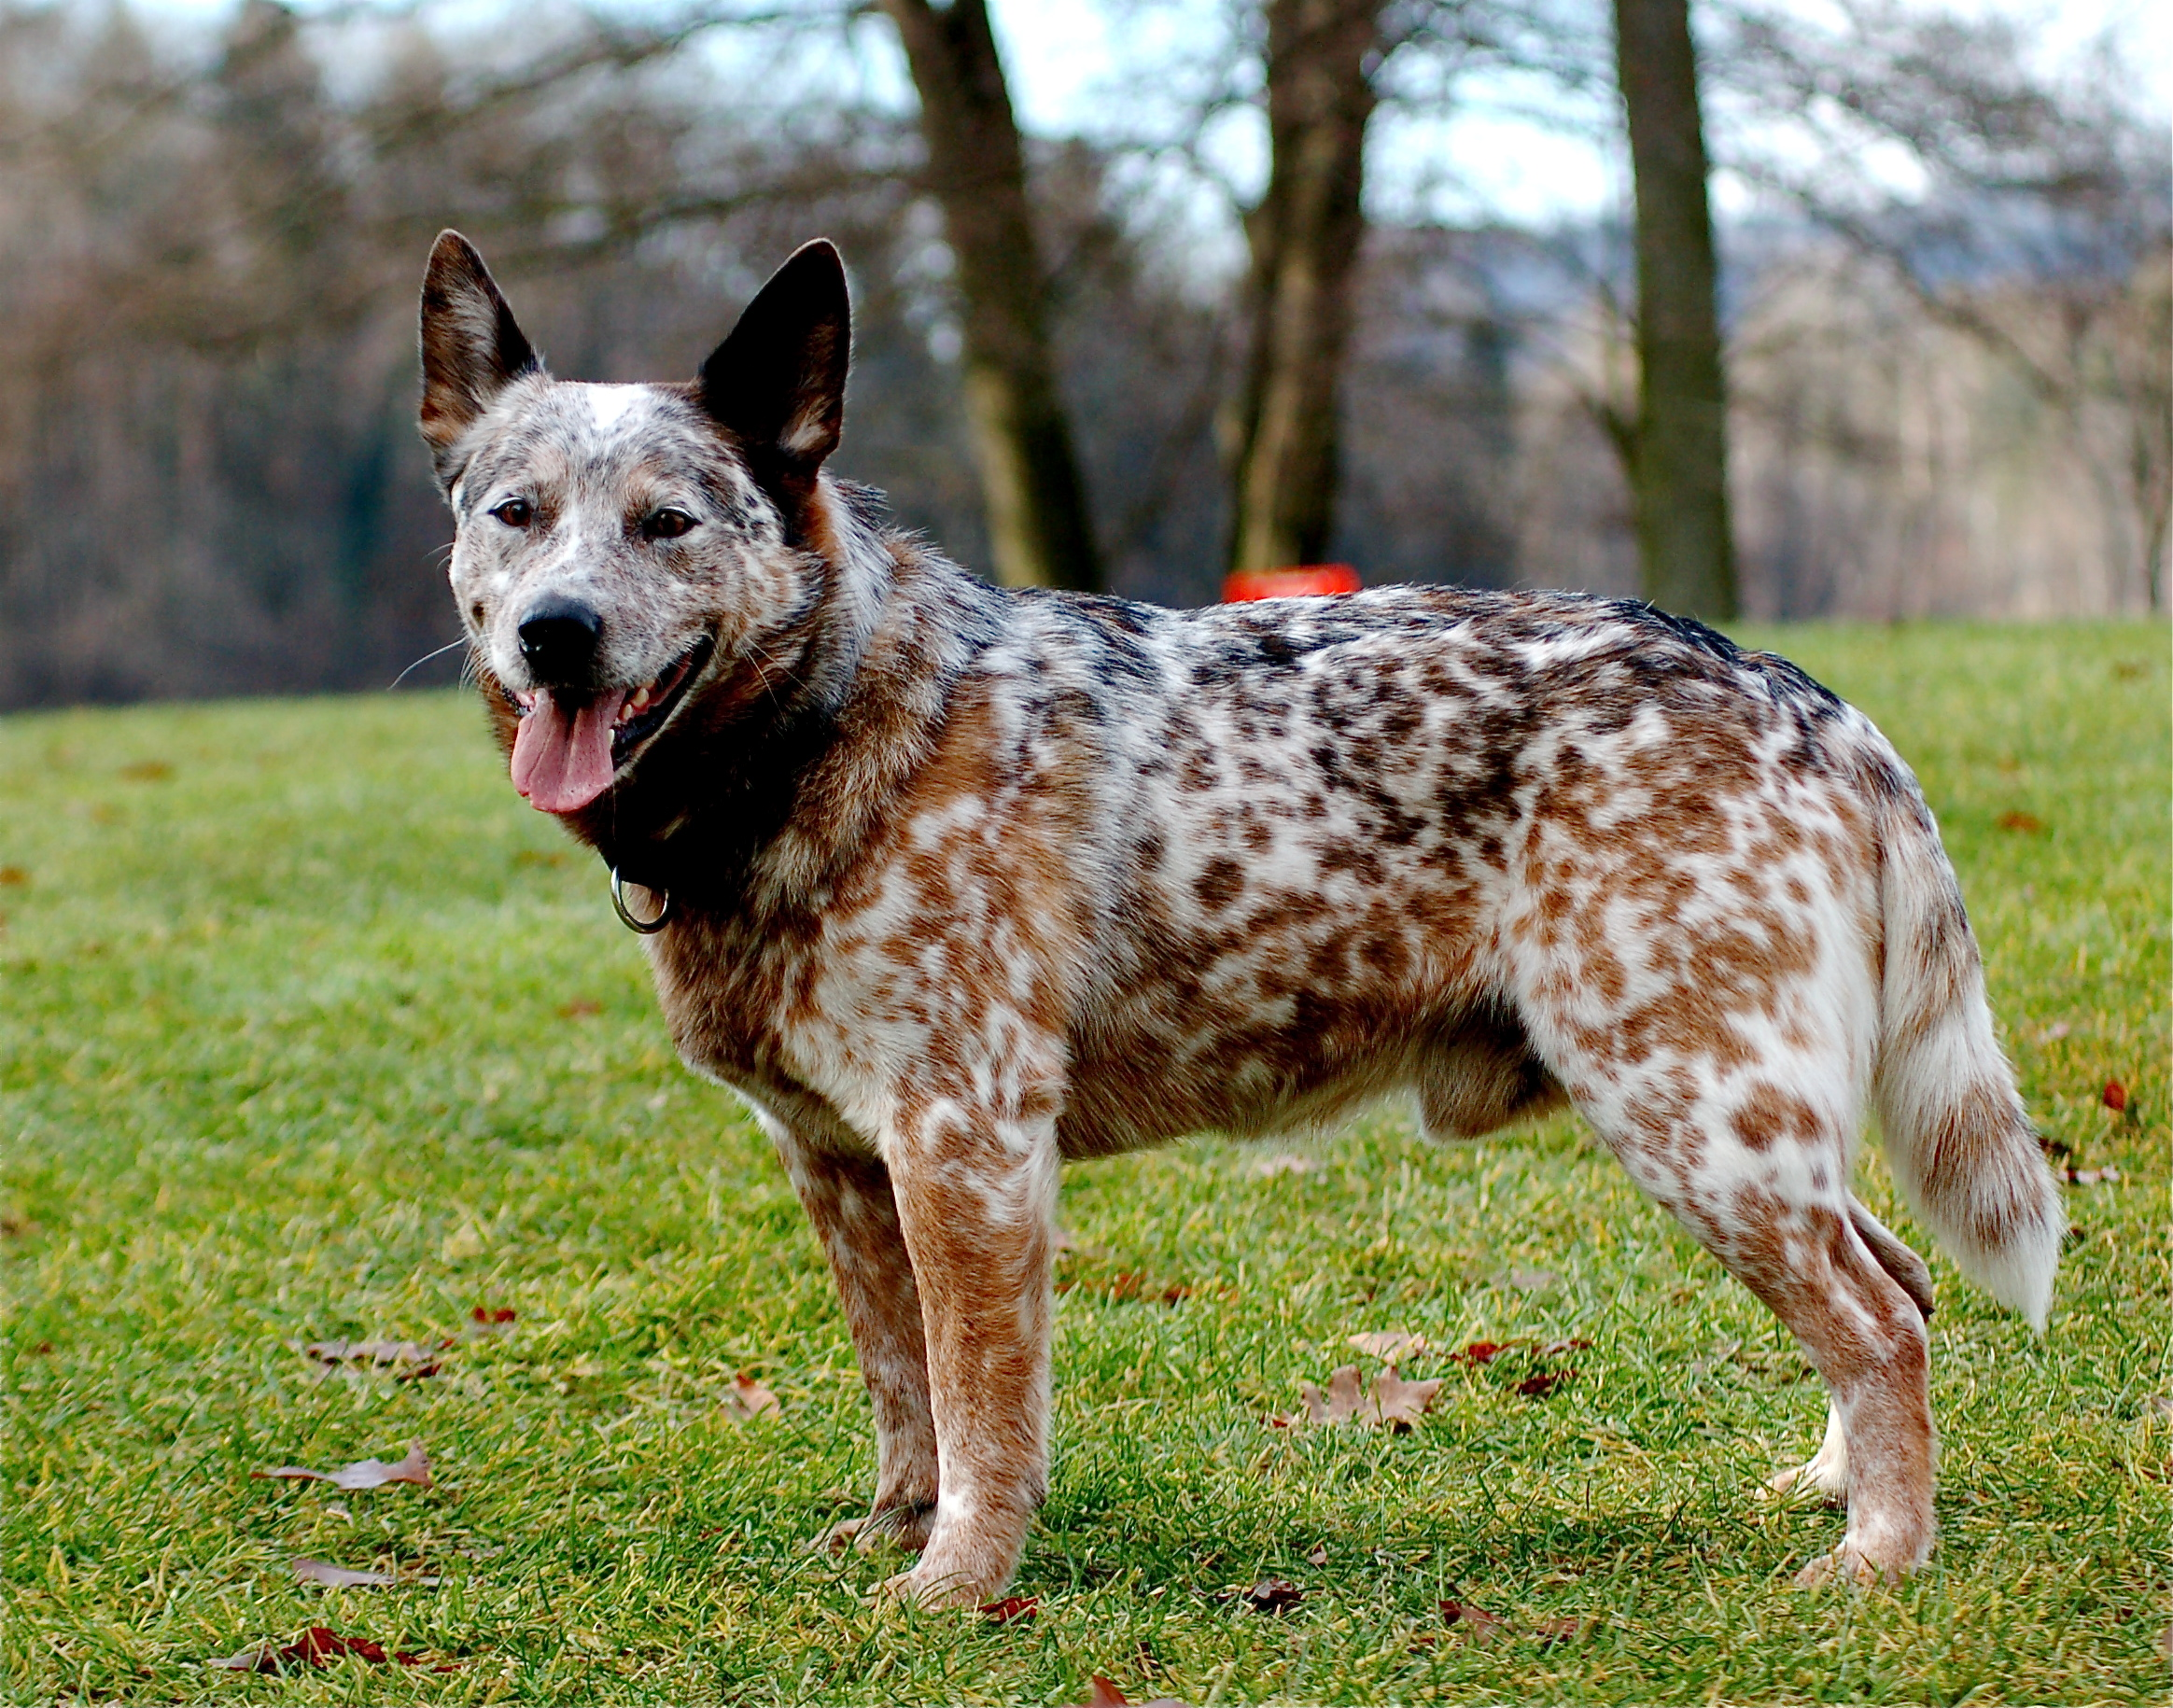 Beautiful Australian Stumpy Tail Cattle Dog wallpaper